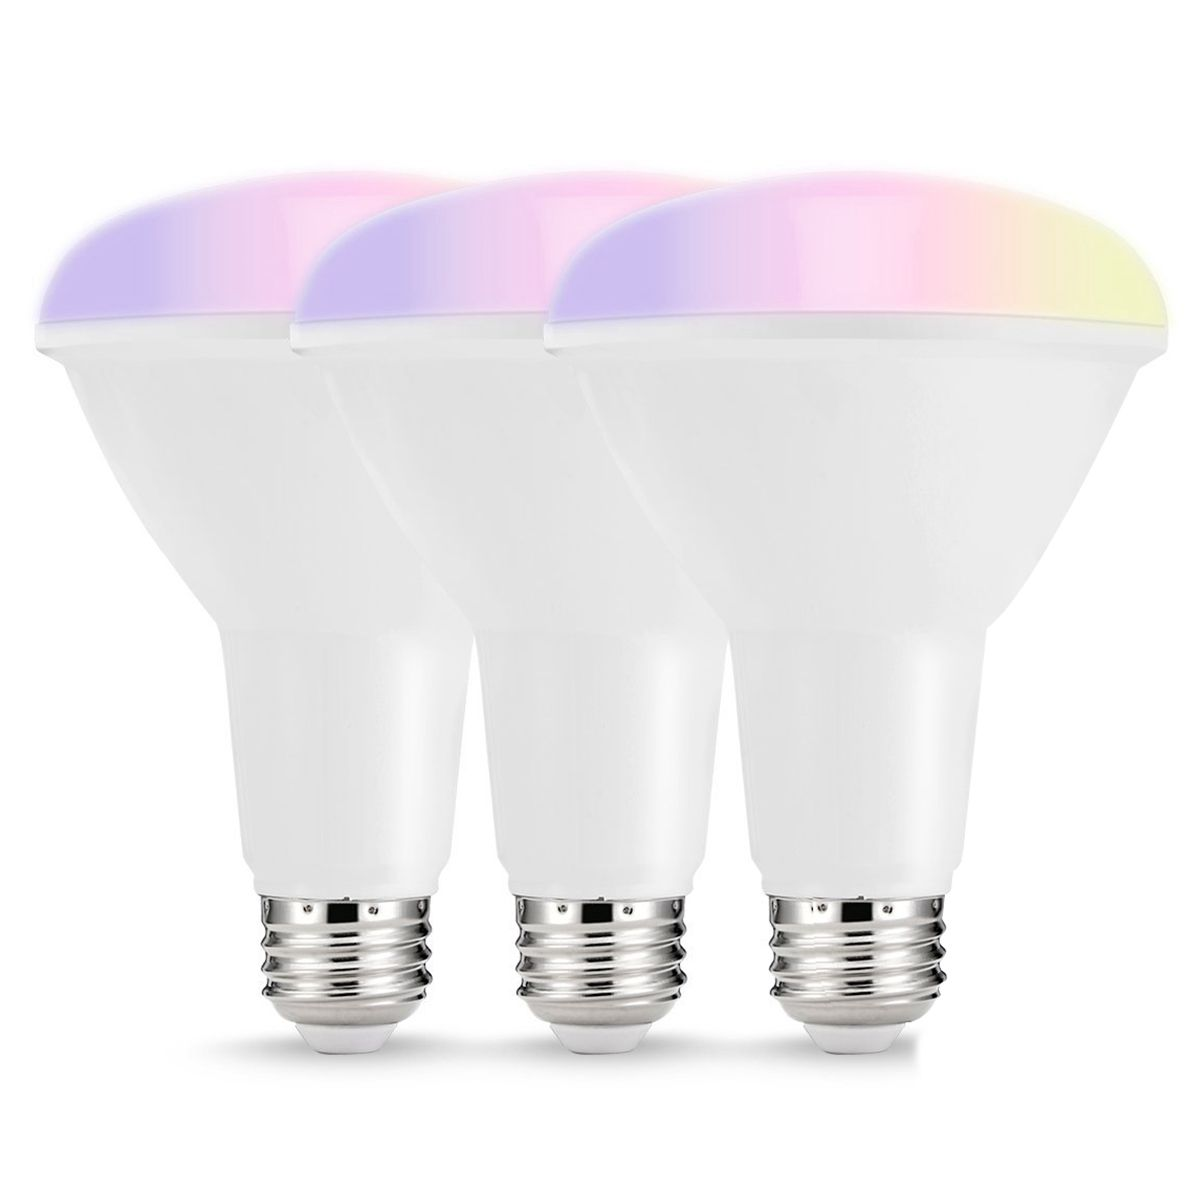 Brand New Smart LED Bulbs,Multicolored WIFI LED Lights, BR30 Dimmable Recessed Light Bulbs, 75W 80W Equivalent Flood Light, Comp